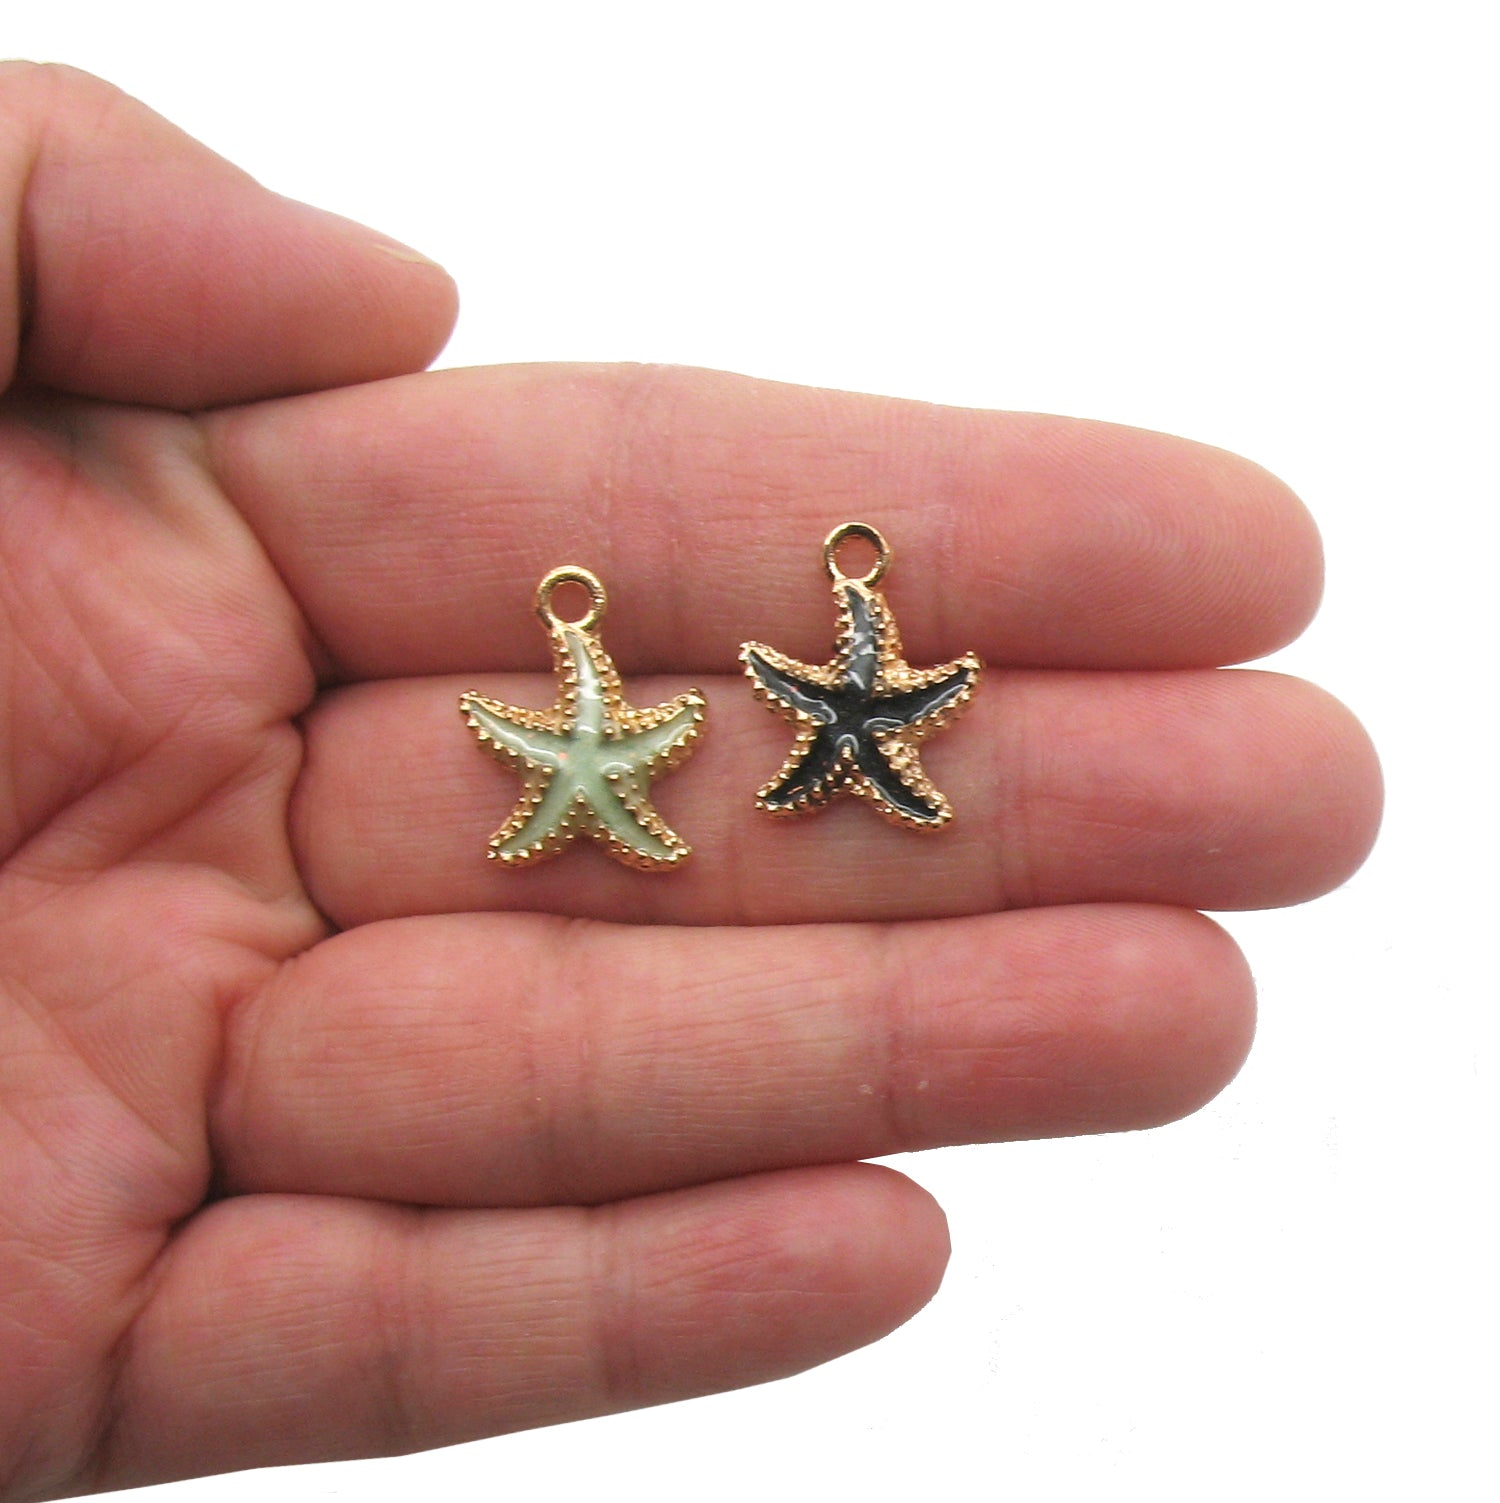 Pretty Starfish Charms - Golden Enamel Star Fish Ocean Charms - Adorabilities Charms & Trinkets